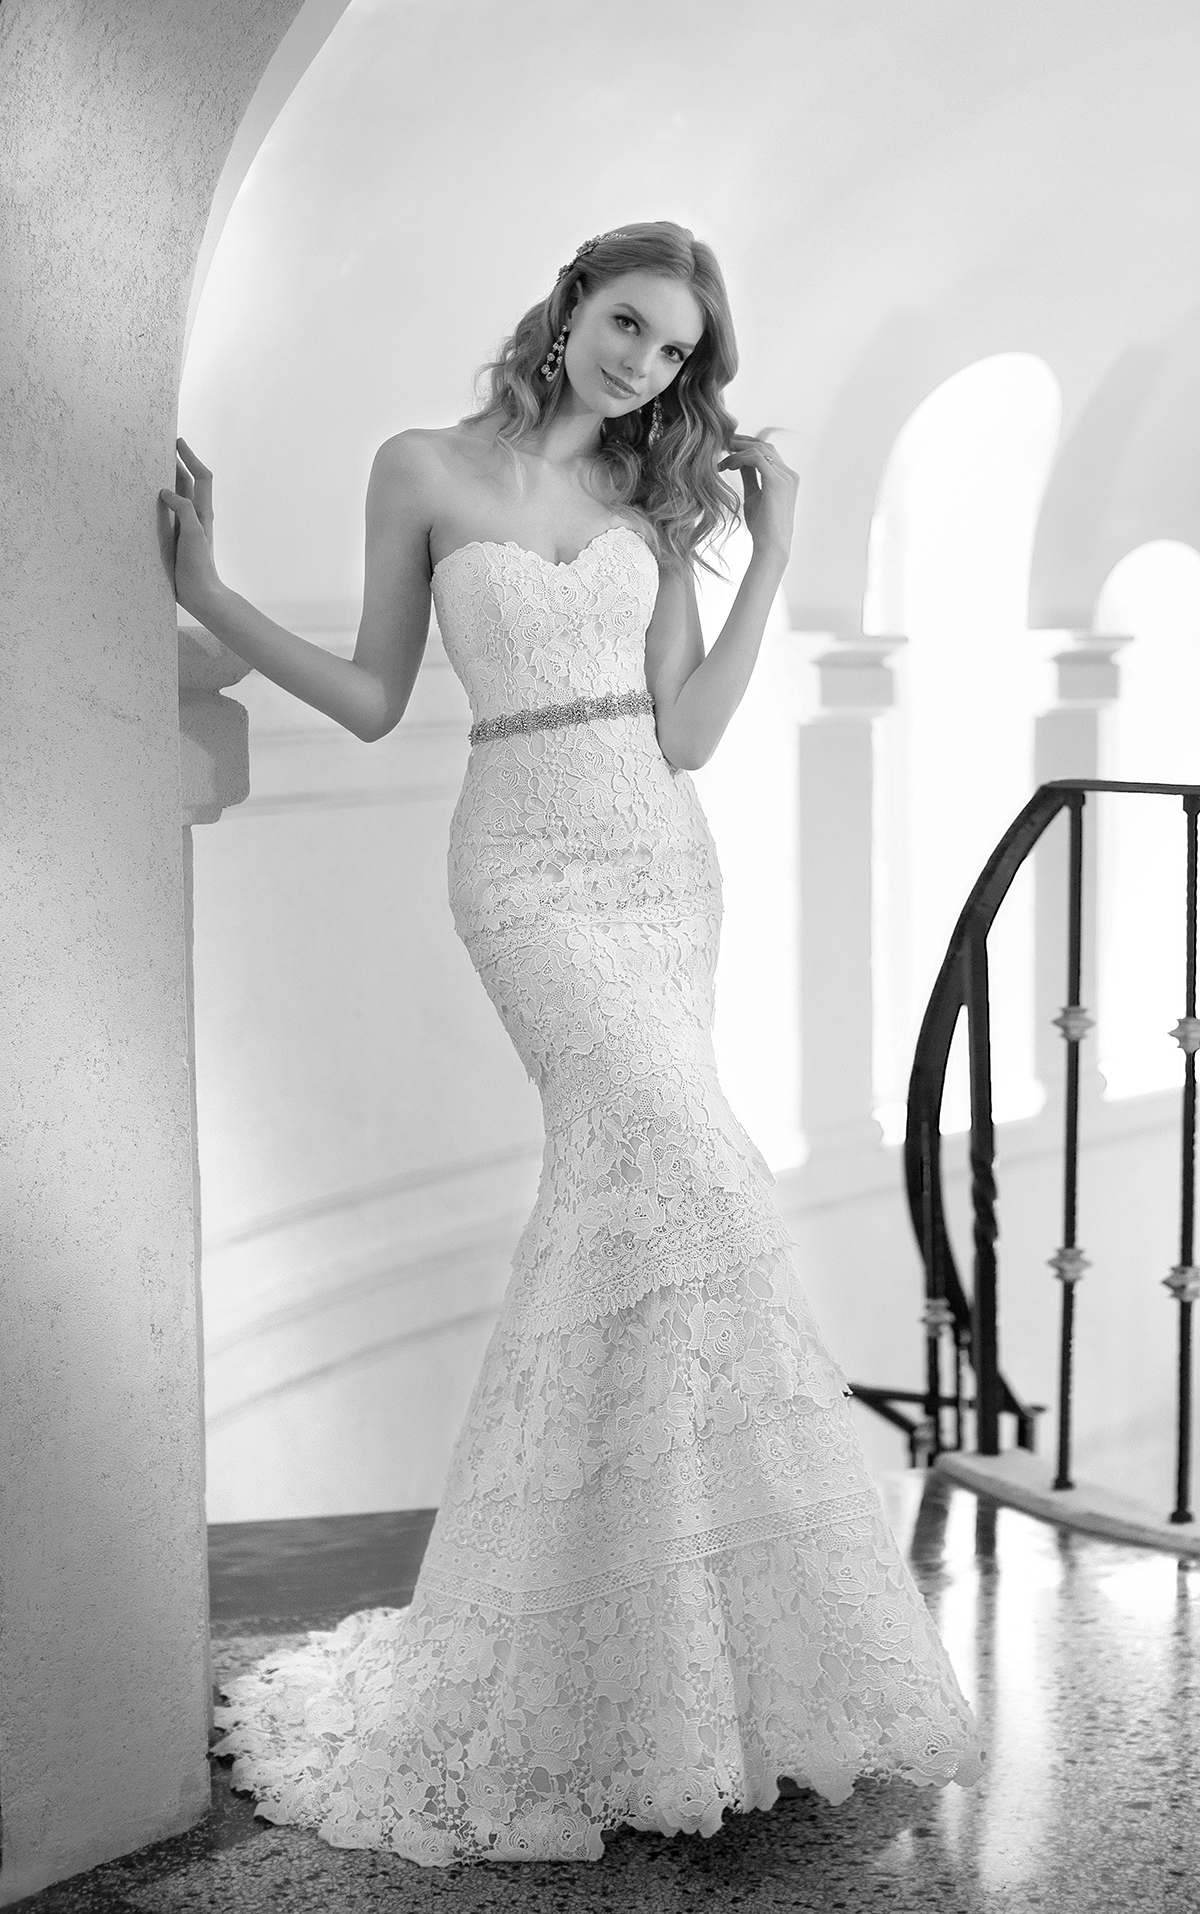 Embroidery detailing, crystal beaded appliques, stunning silhouettes ...